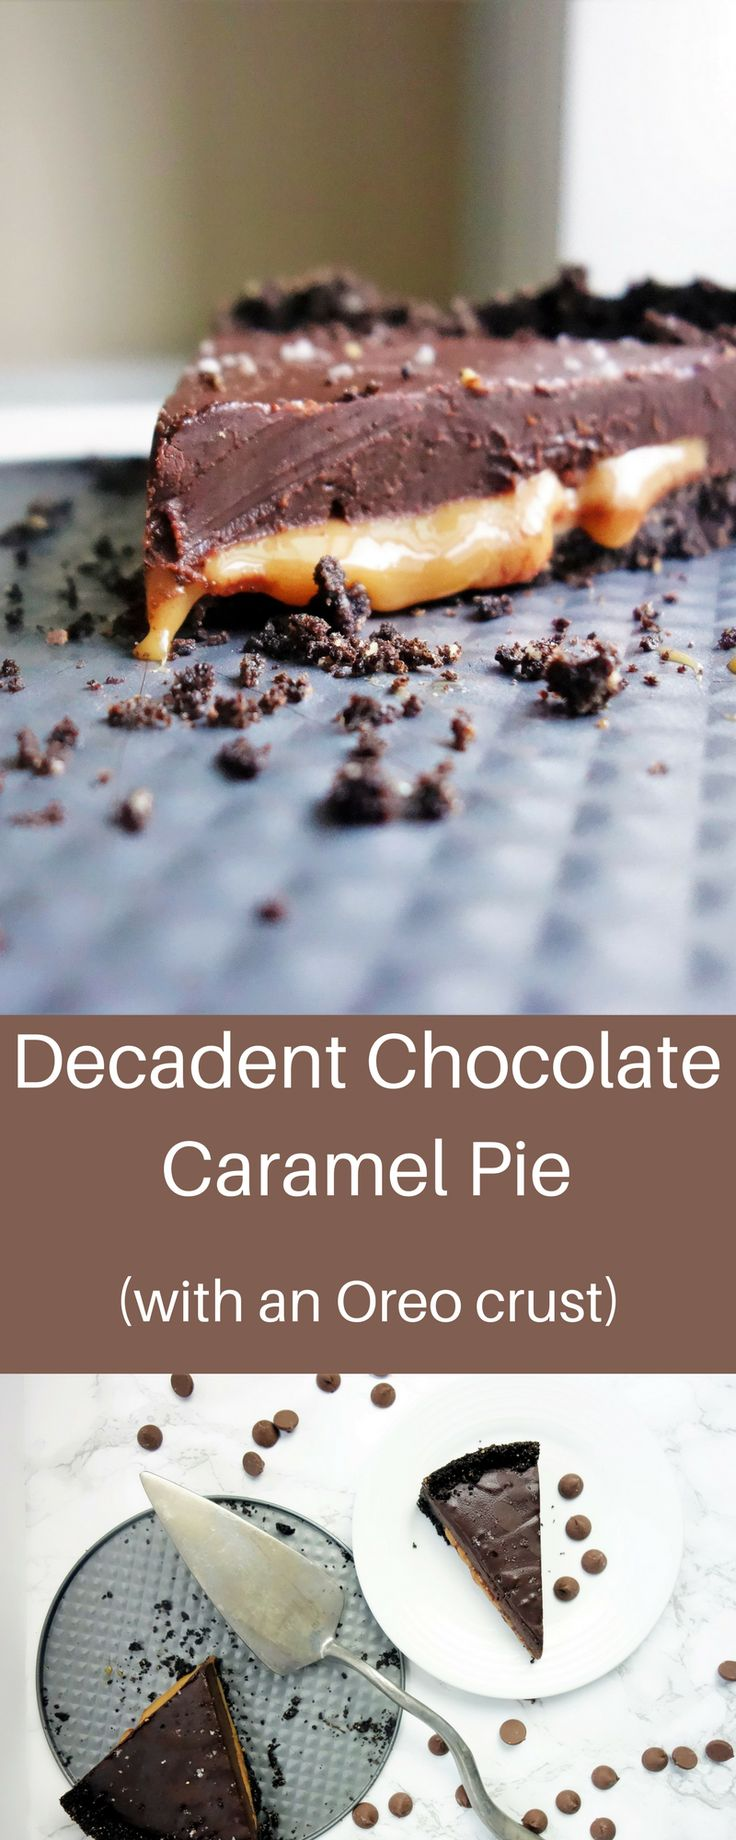 Deliciously Decadent Chocolate Caramel Pie with an Oreo Crust chocolate truffle pie, chocolate caramel pie recipe, chocolate pie recipe, easy chocolate pie, oreo crust, no bake chocolate pie, no bake desserts, holiday desserts, chocolate salted caramel tart, salted caramel chocolate pie, dark chocolate caramel oreo pie, chocolate oreo pie recipe, holiday dessert recipes